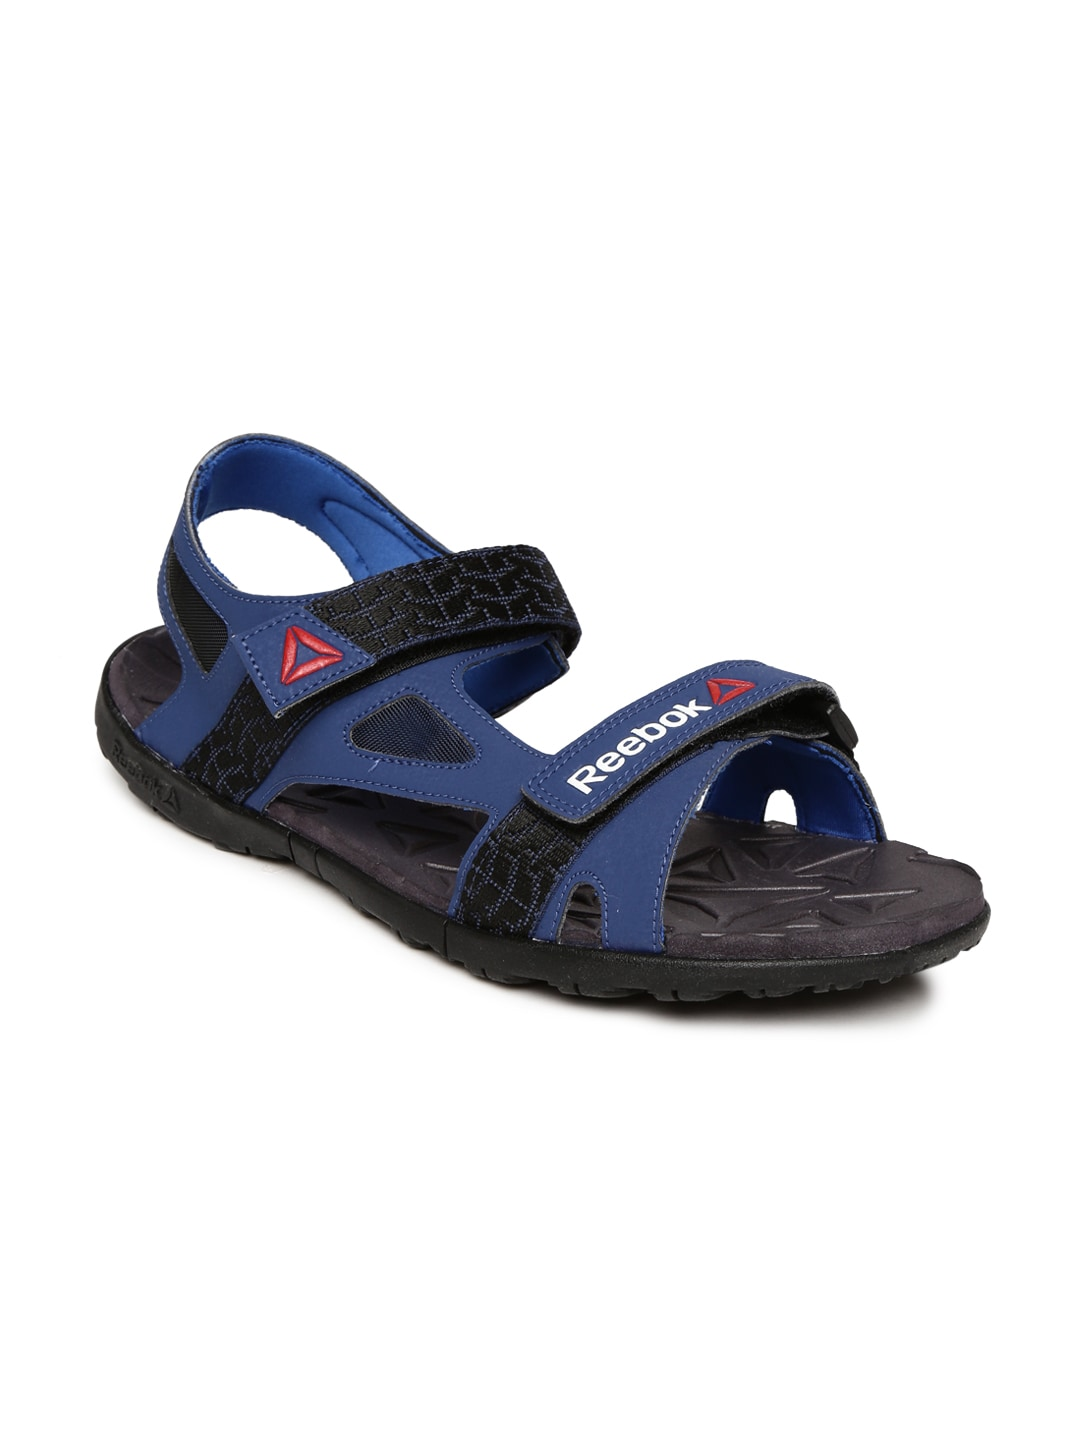 75c01832943 Reebok Socks Sandals - Buy Reebok Socks Sandals online in India